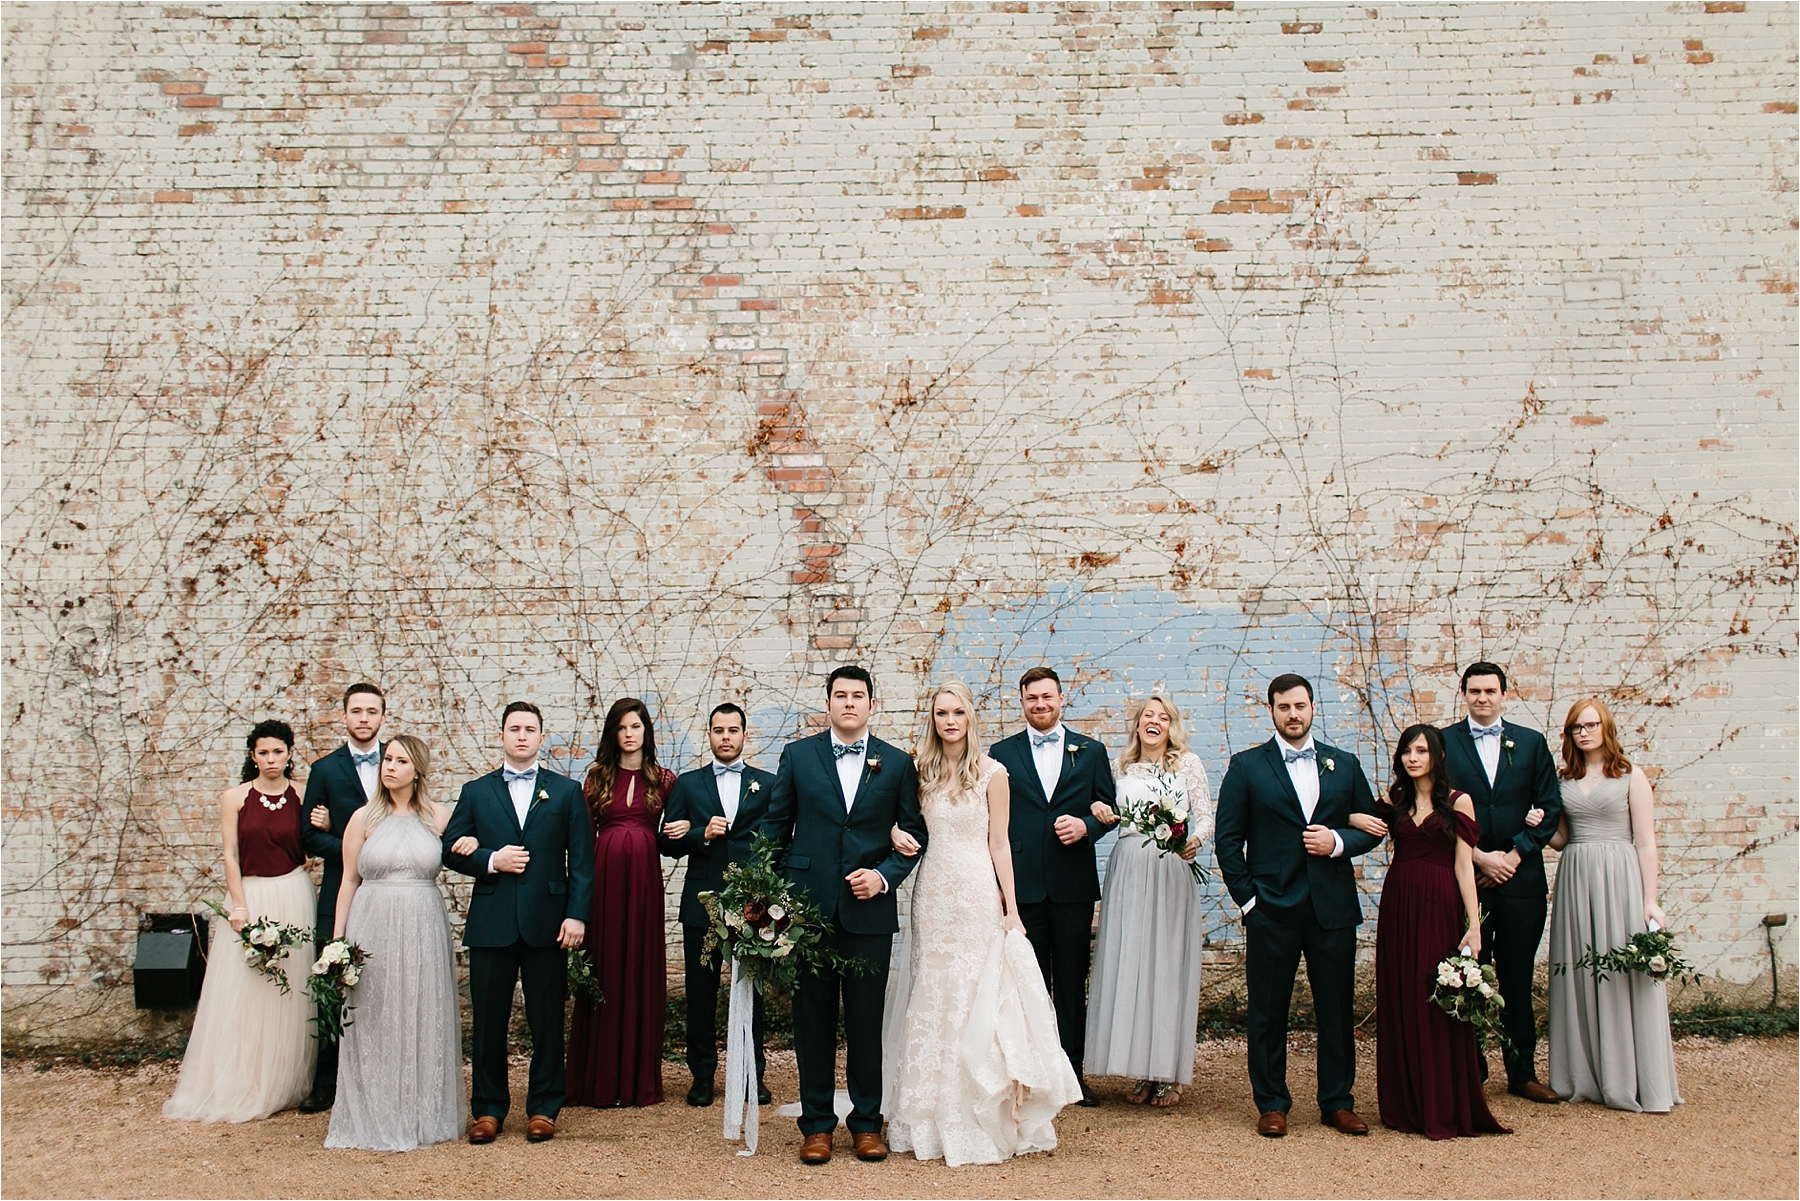 an organic, romantic, whimsical wedding at Brik Venue with Blue Grey, Burgandy, and pops of navy gold + white accents by North Texas Wedding Photographer Rachel Meagan Photography __ 230